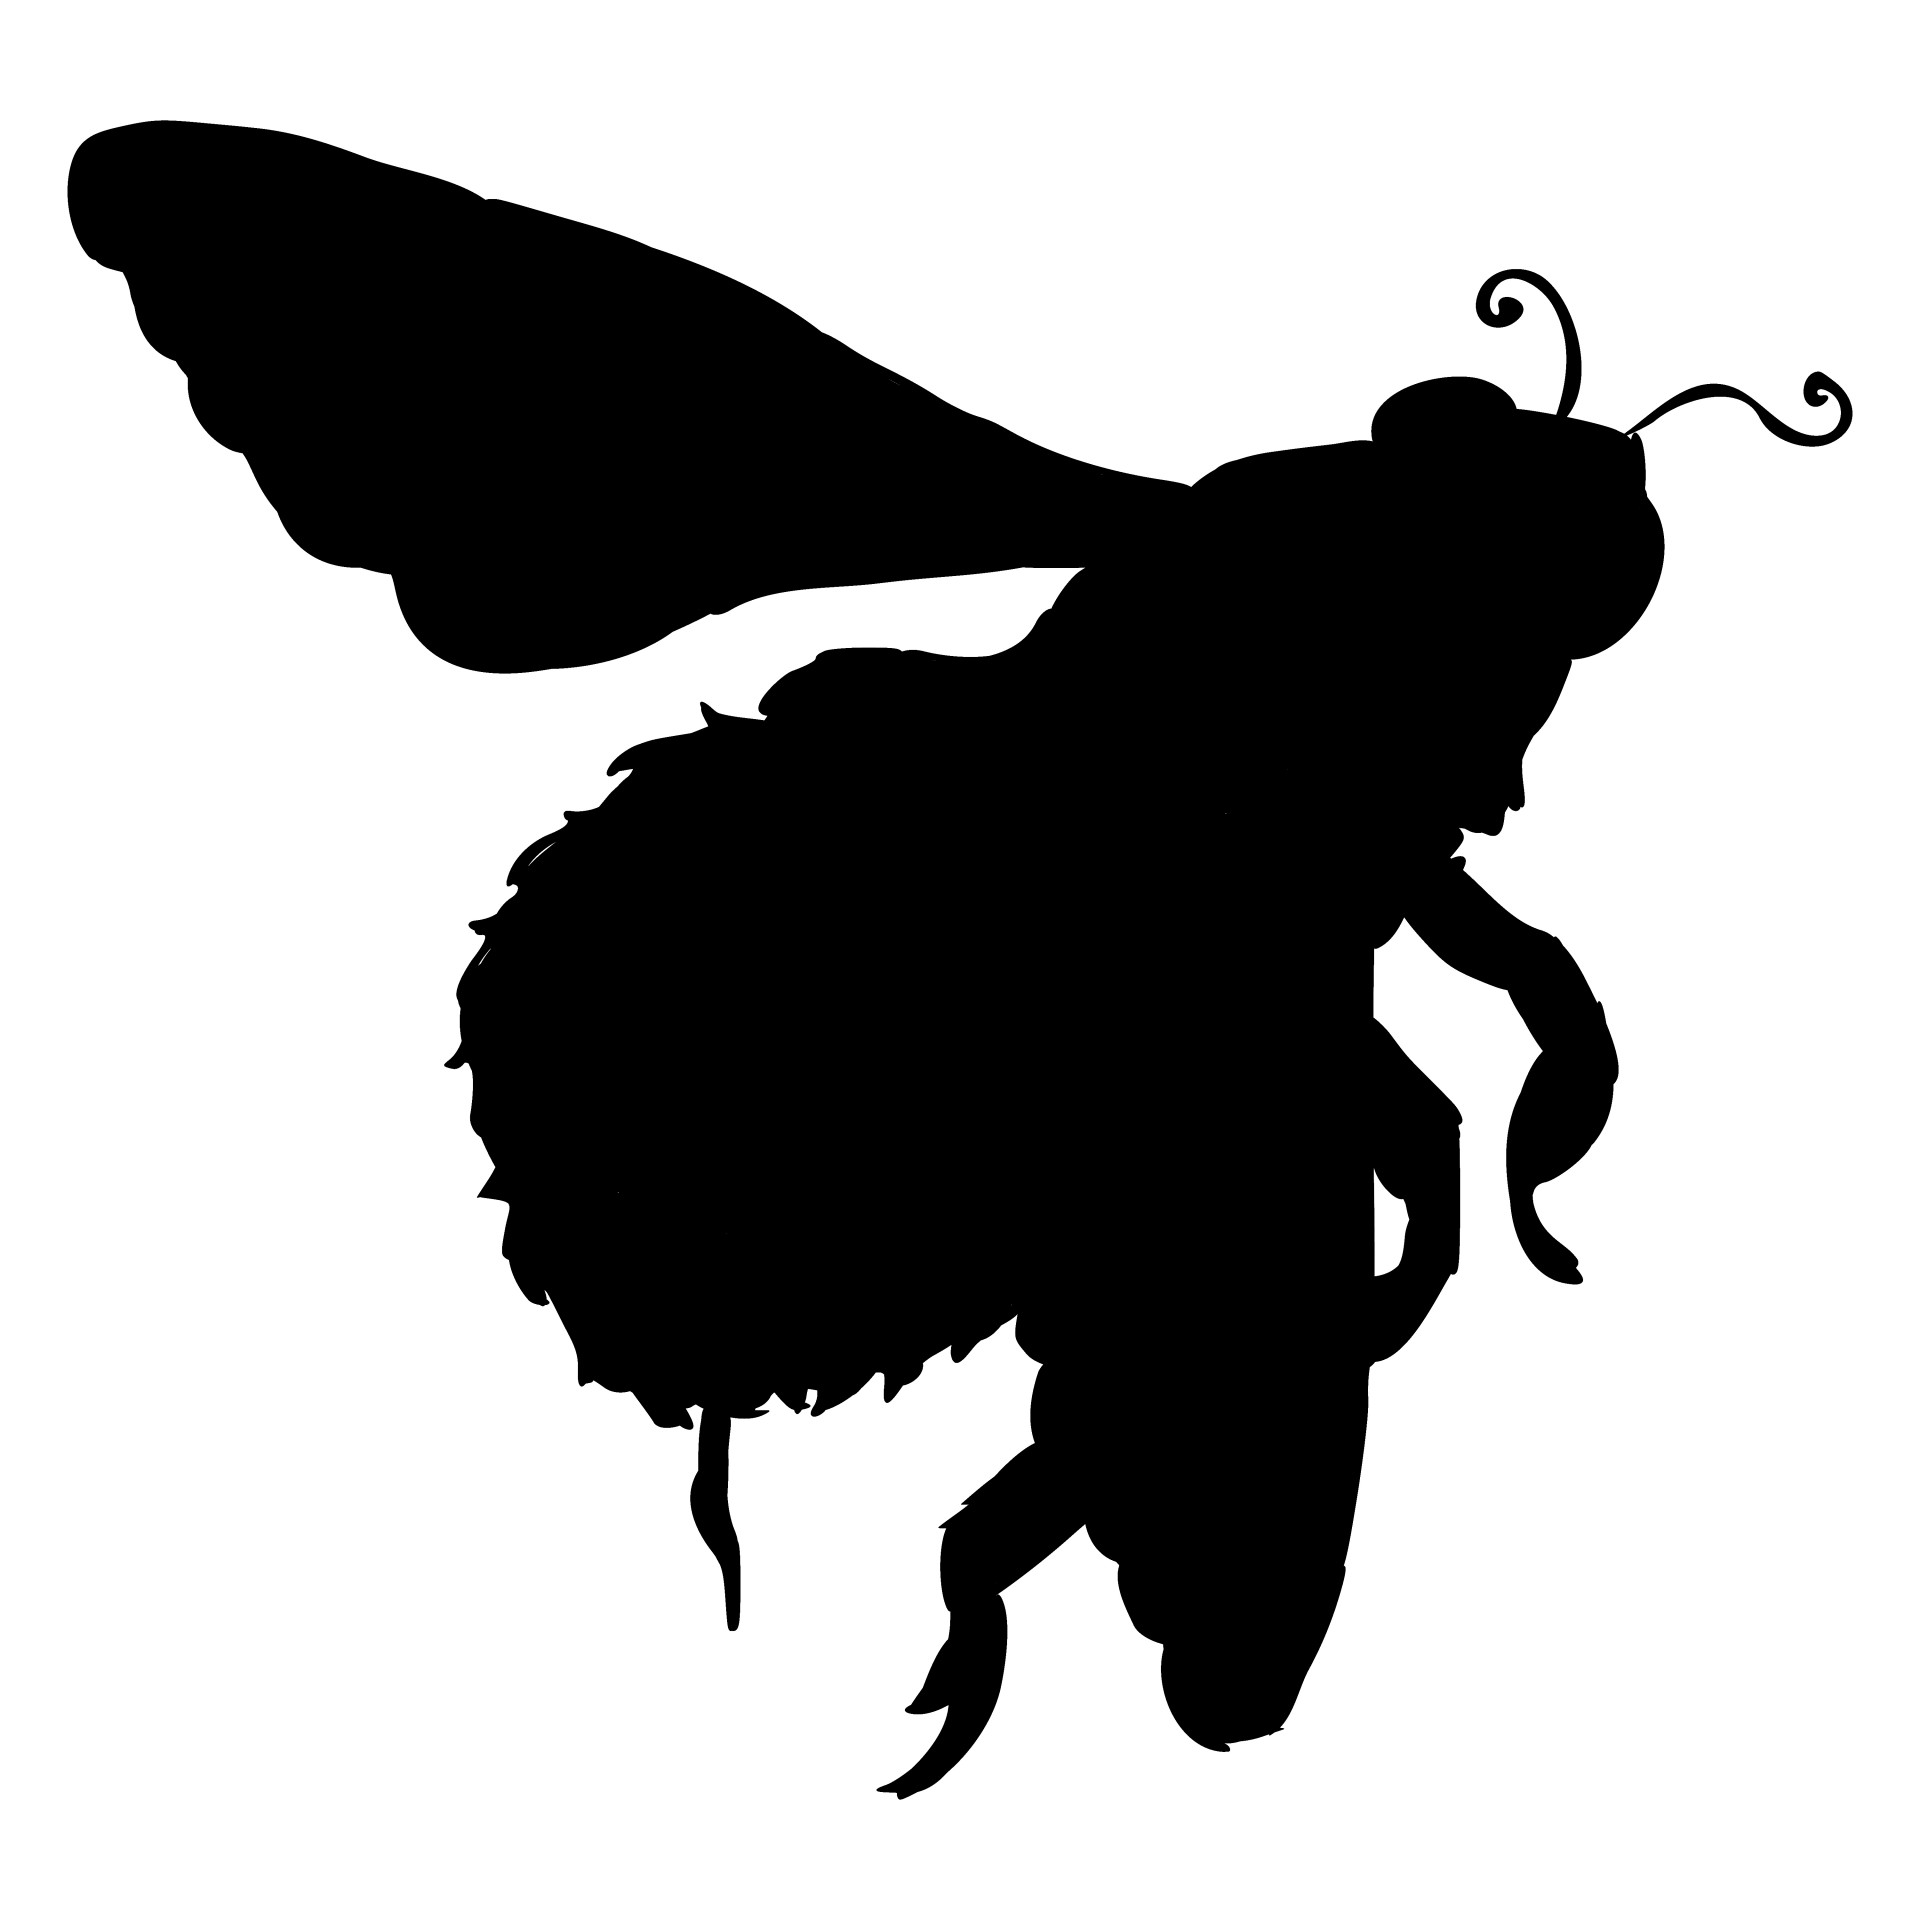 bumble bee silhouette bees clipart silhouette bees silhouette transparent free bumble bee silhouette